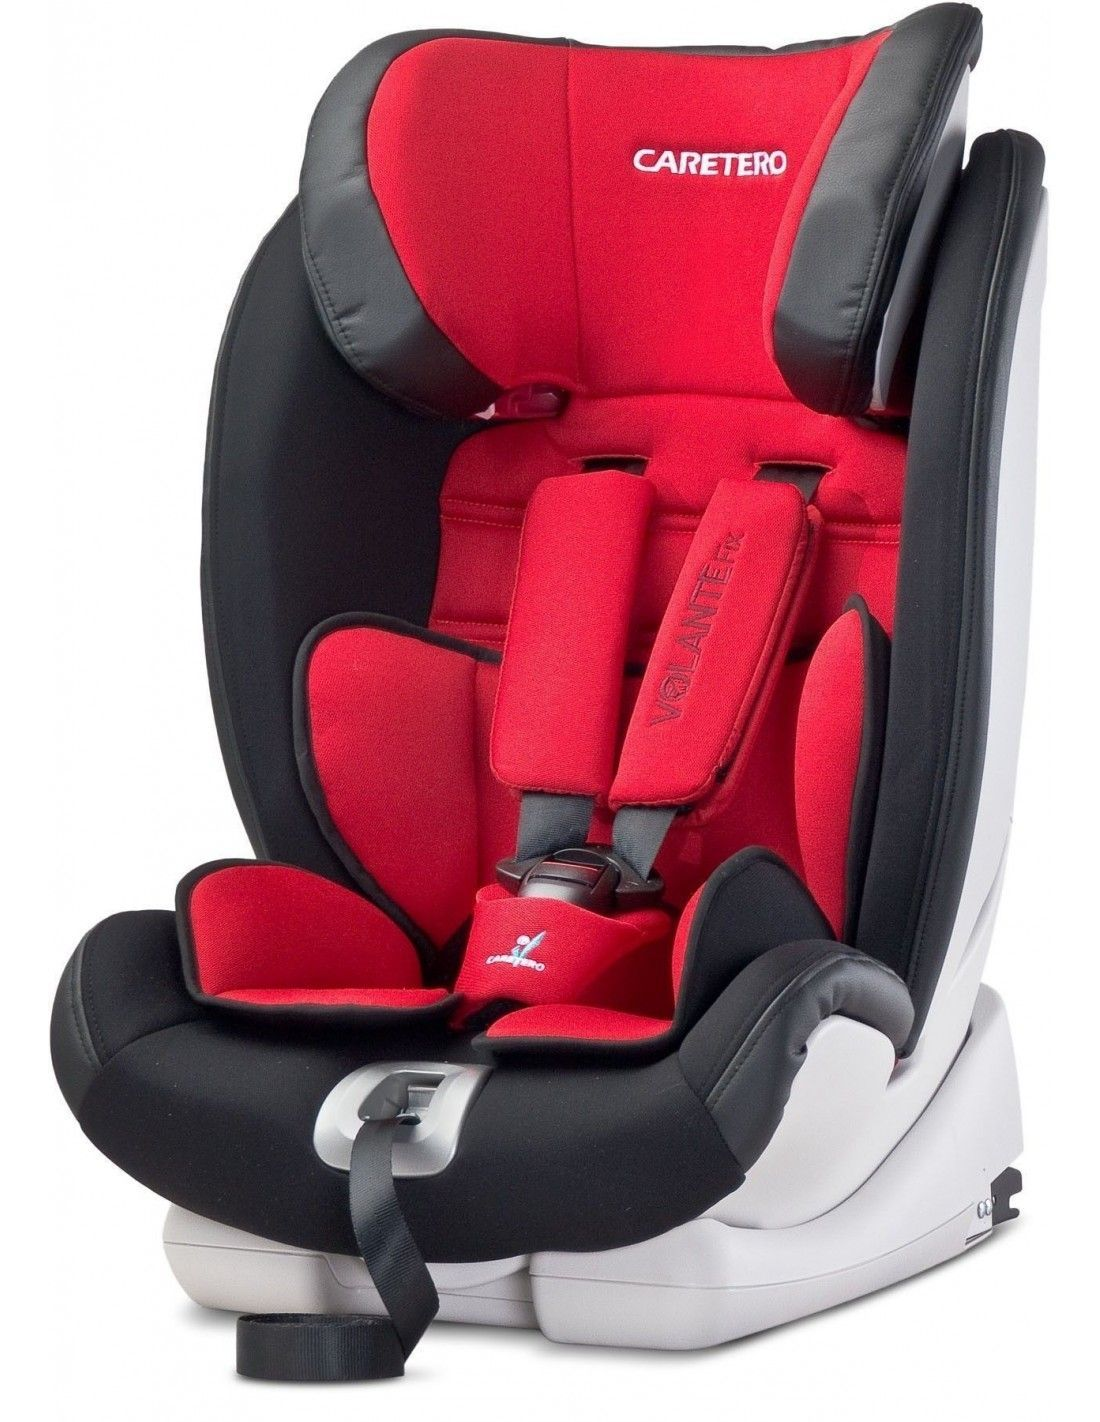 silla de coche volante grupo 1 2 3 isofix top tether. Black Bedroom Furniture Sets. Home Design Ideas